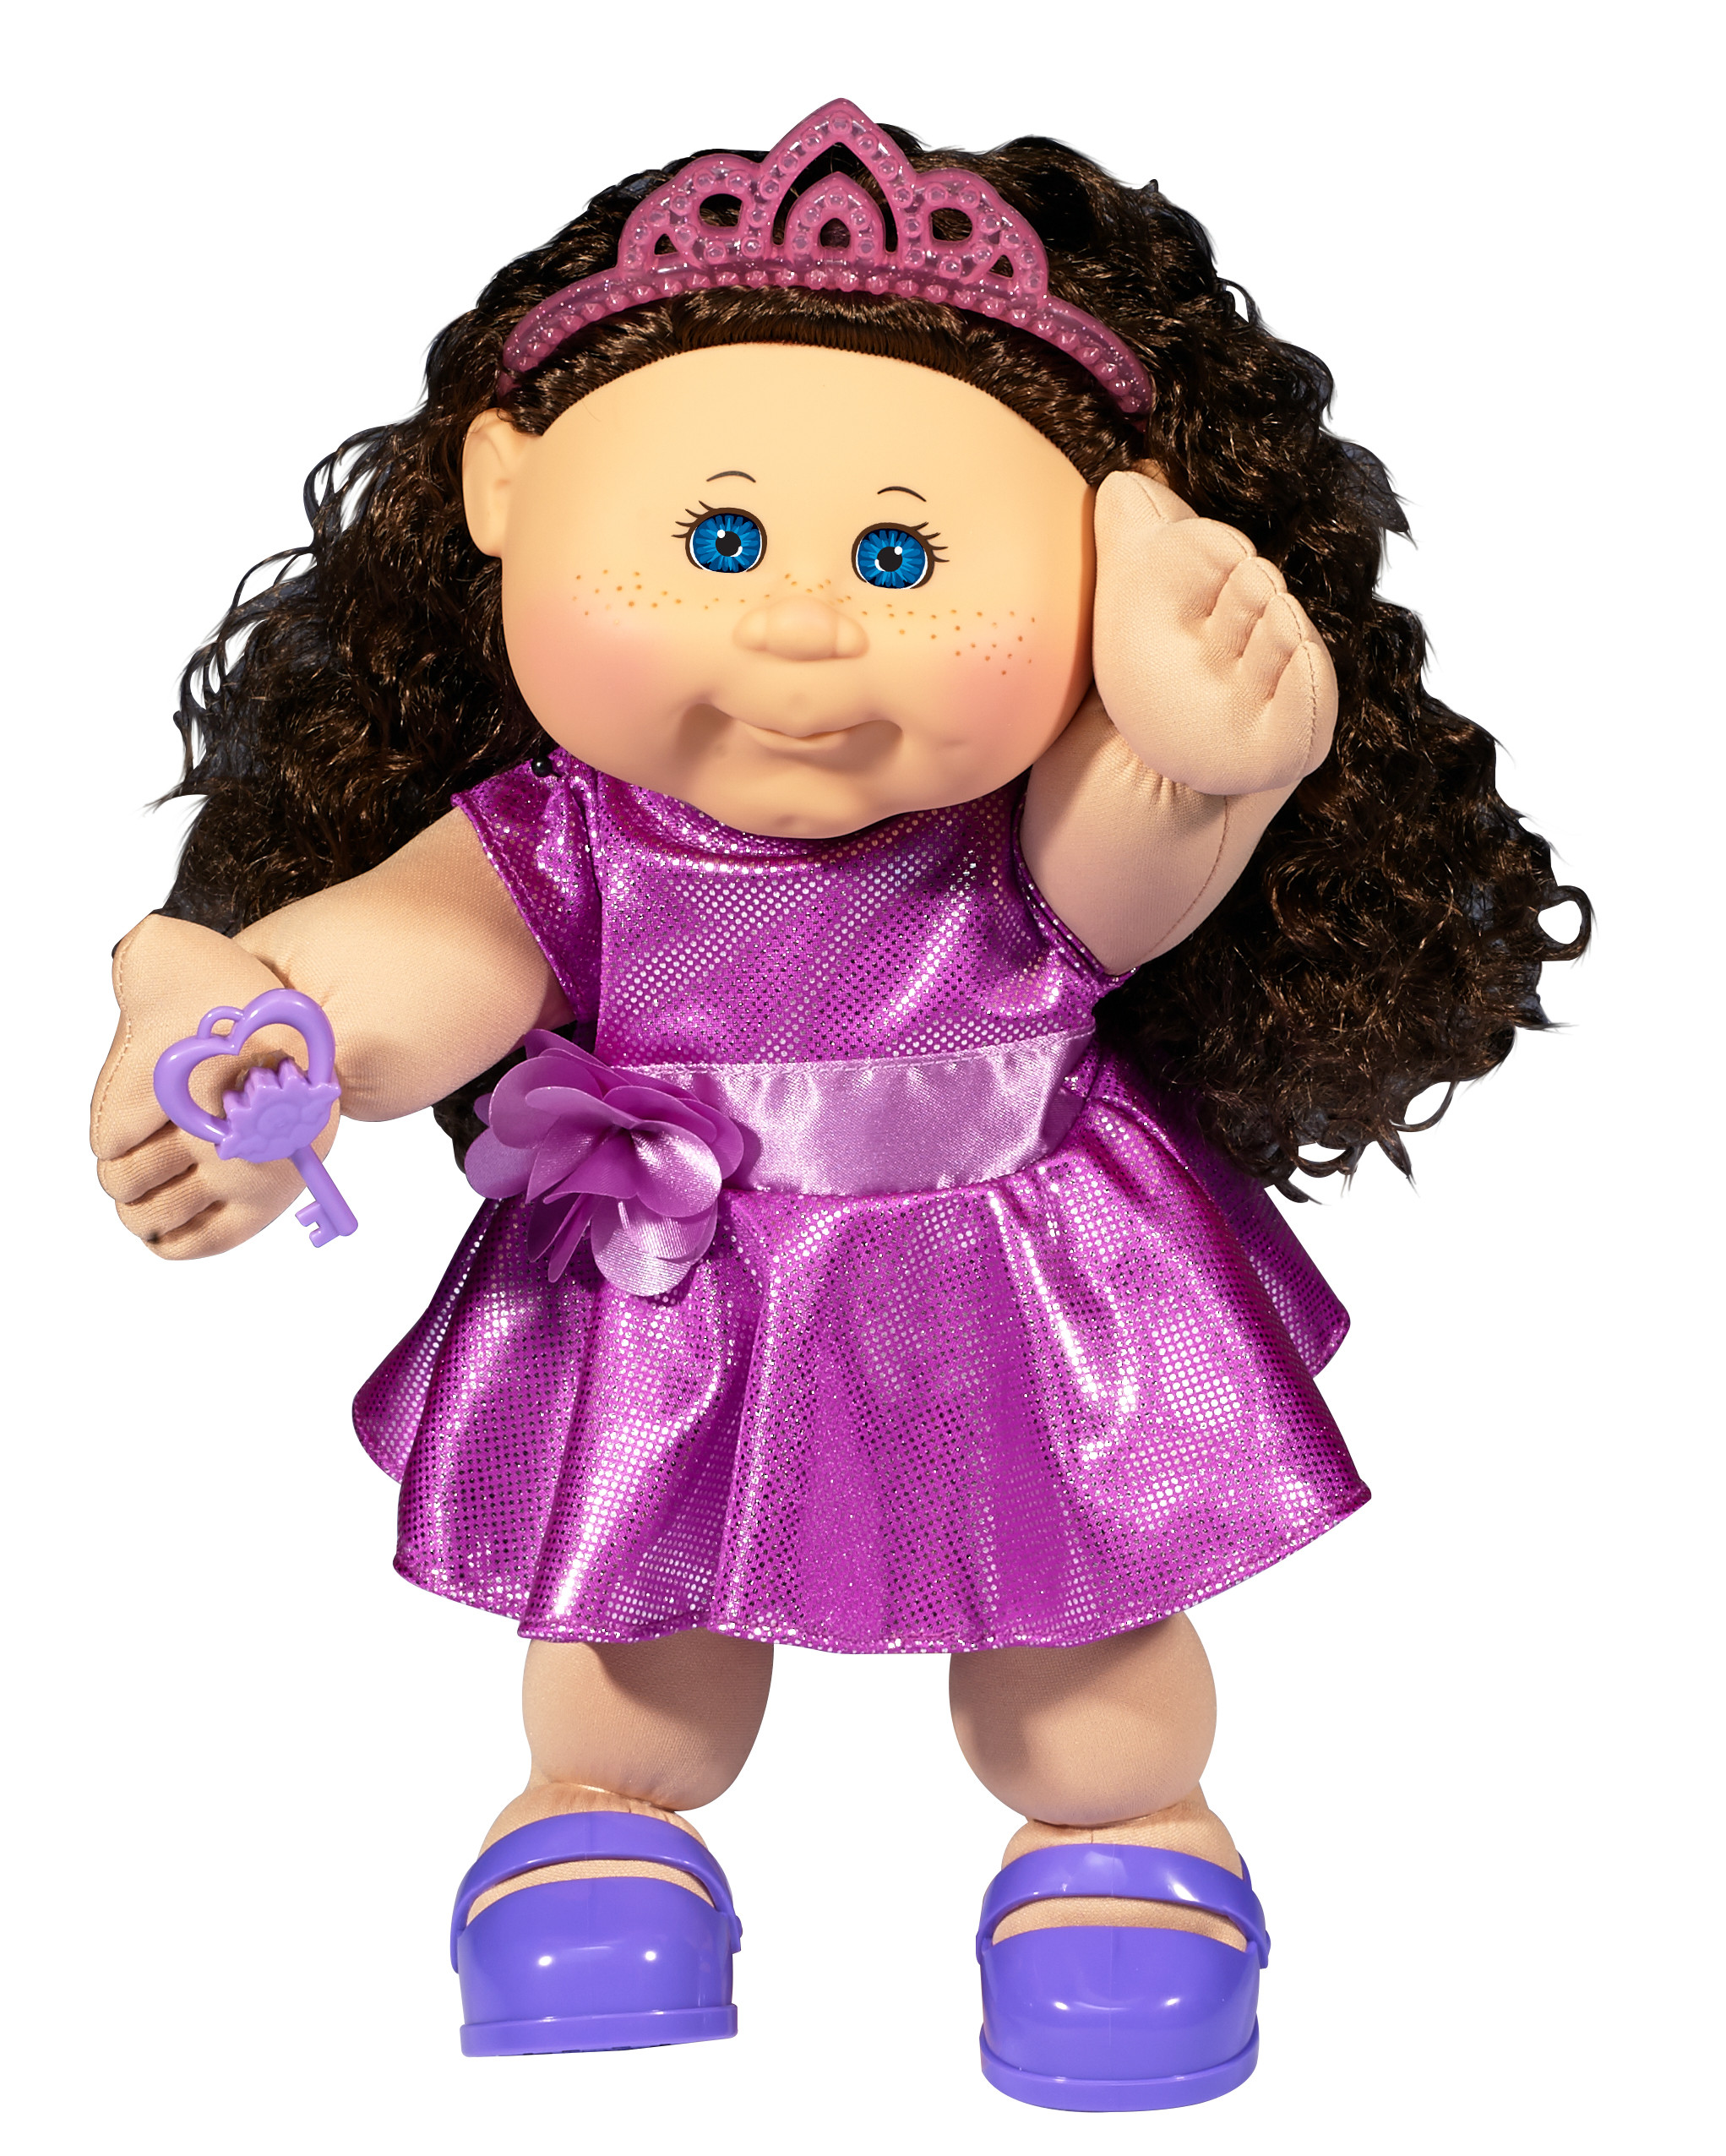 Cabbage Patch Doll New Cabbage Doll Usa Of Superb 40 Models Cabbage Patch Doll